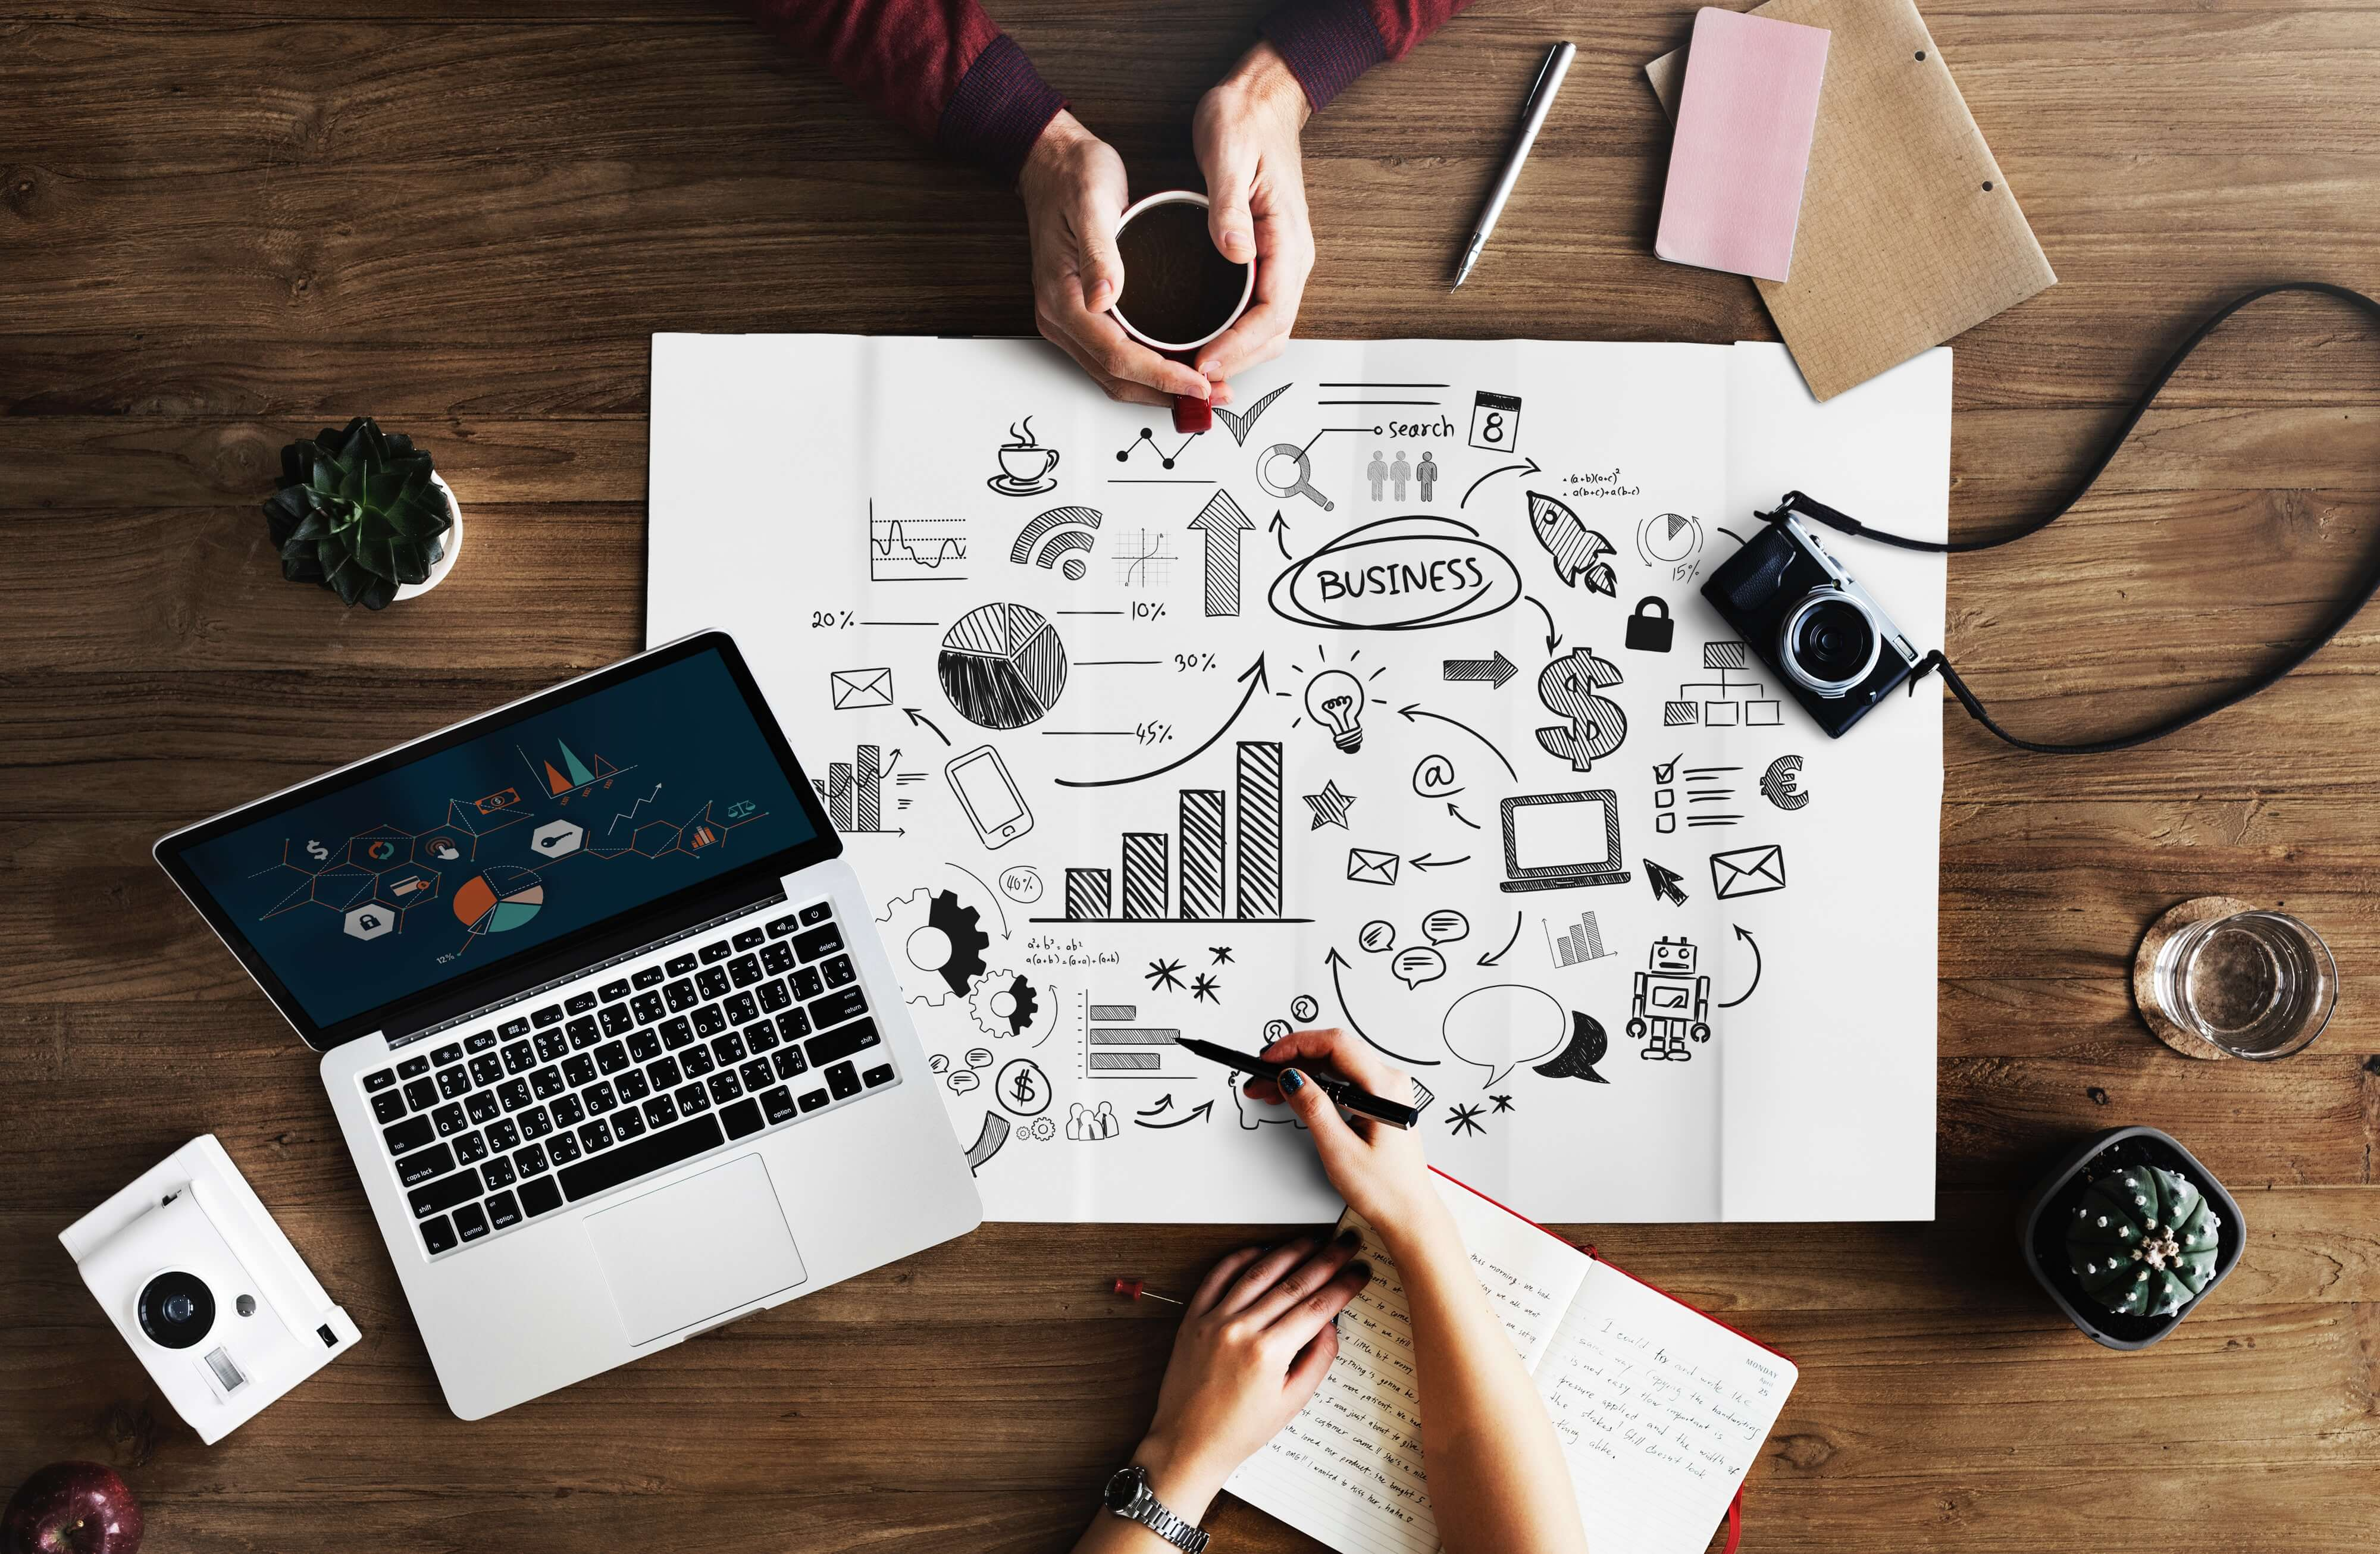 Why digital marketing is important for small businesses - Instaon